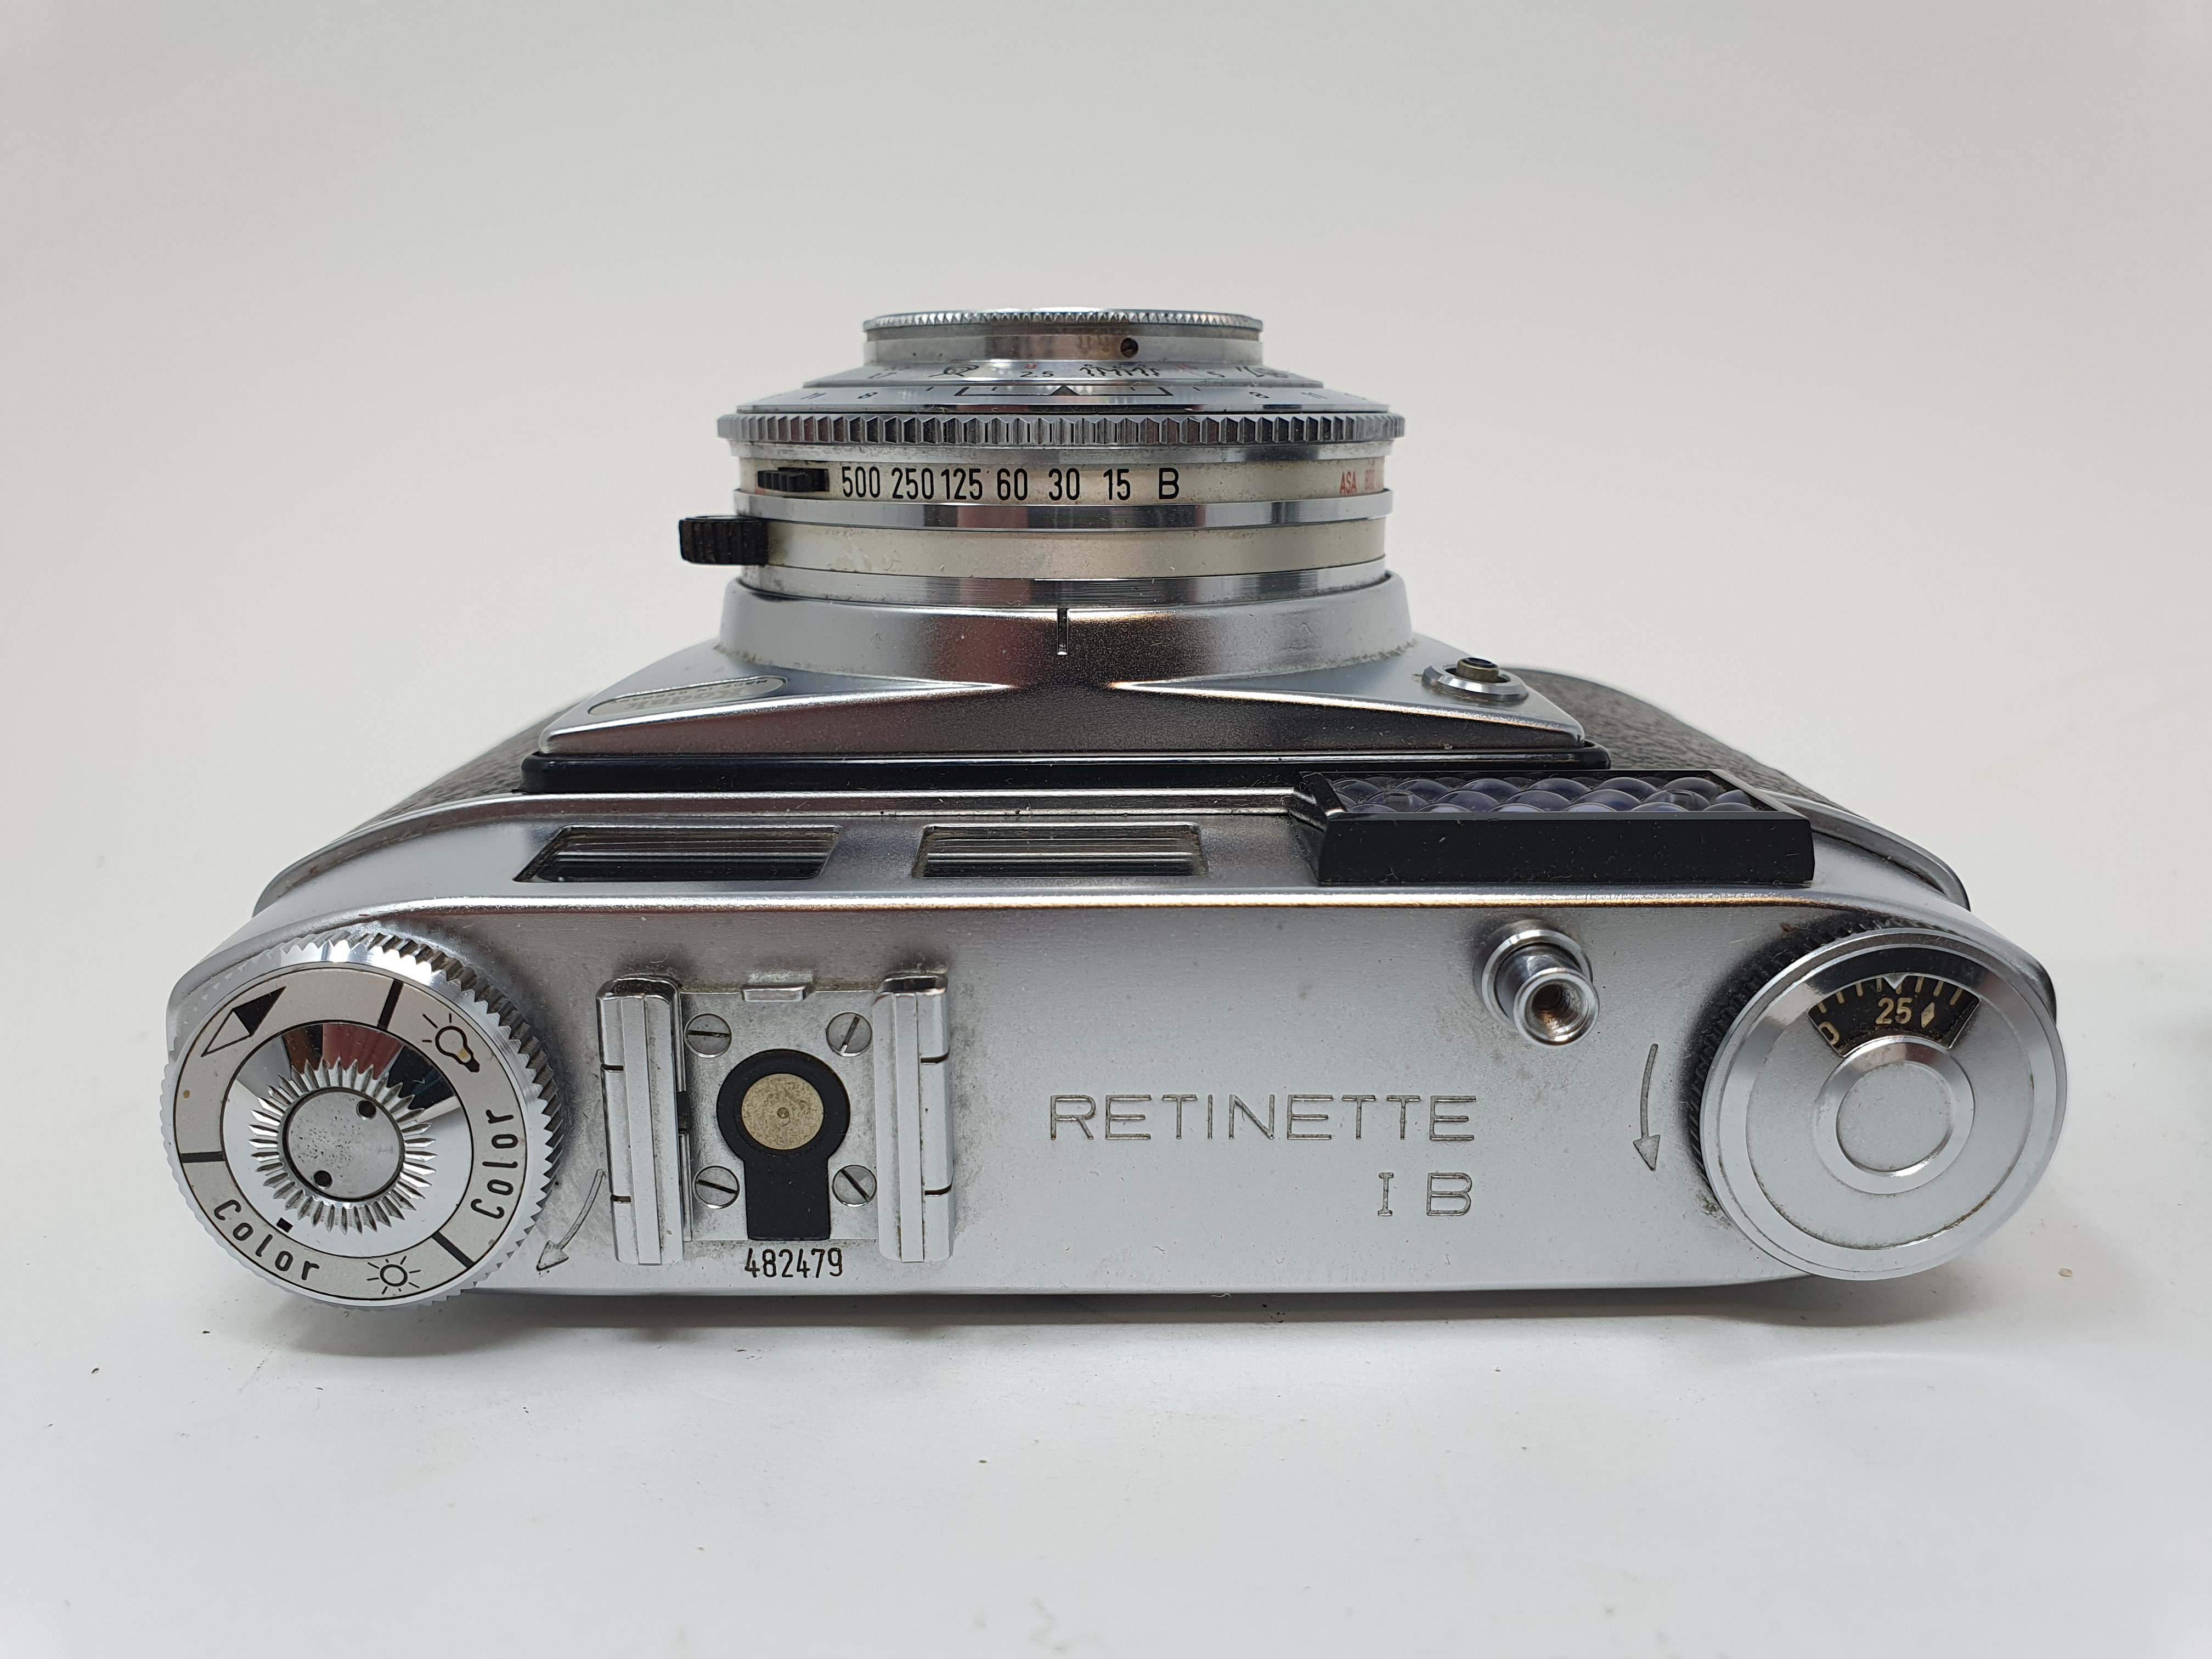 A Kodak Retinette 1 B camera and a Zeiss Ikon camera (2) Provenance: Part of a vast single owner - Image 4 of 4